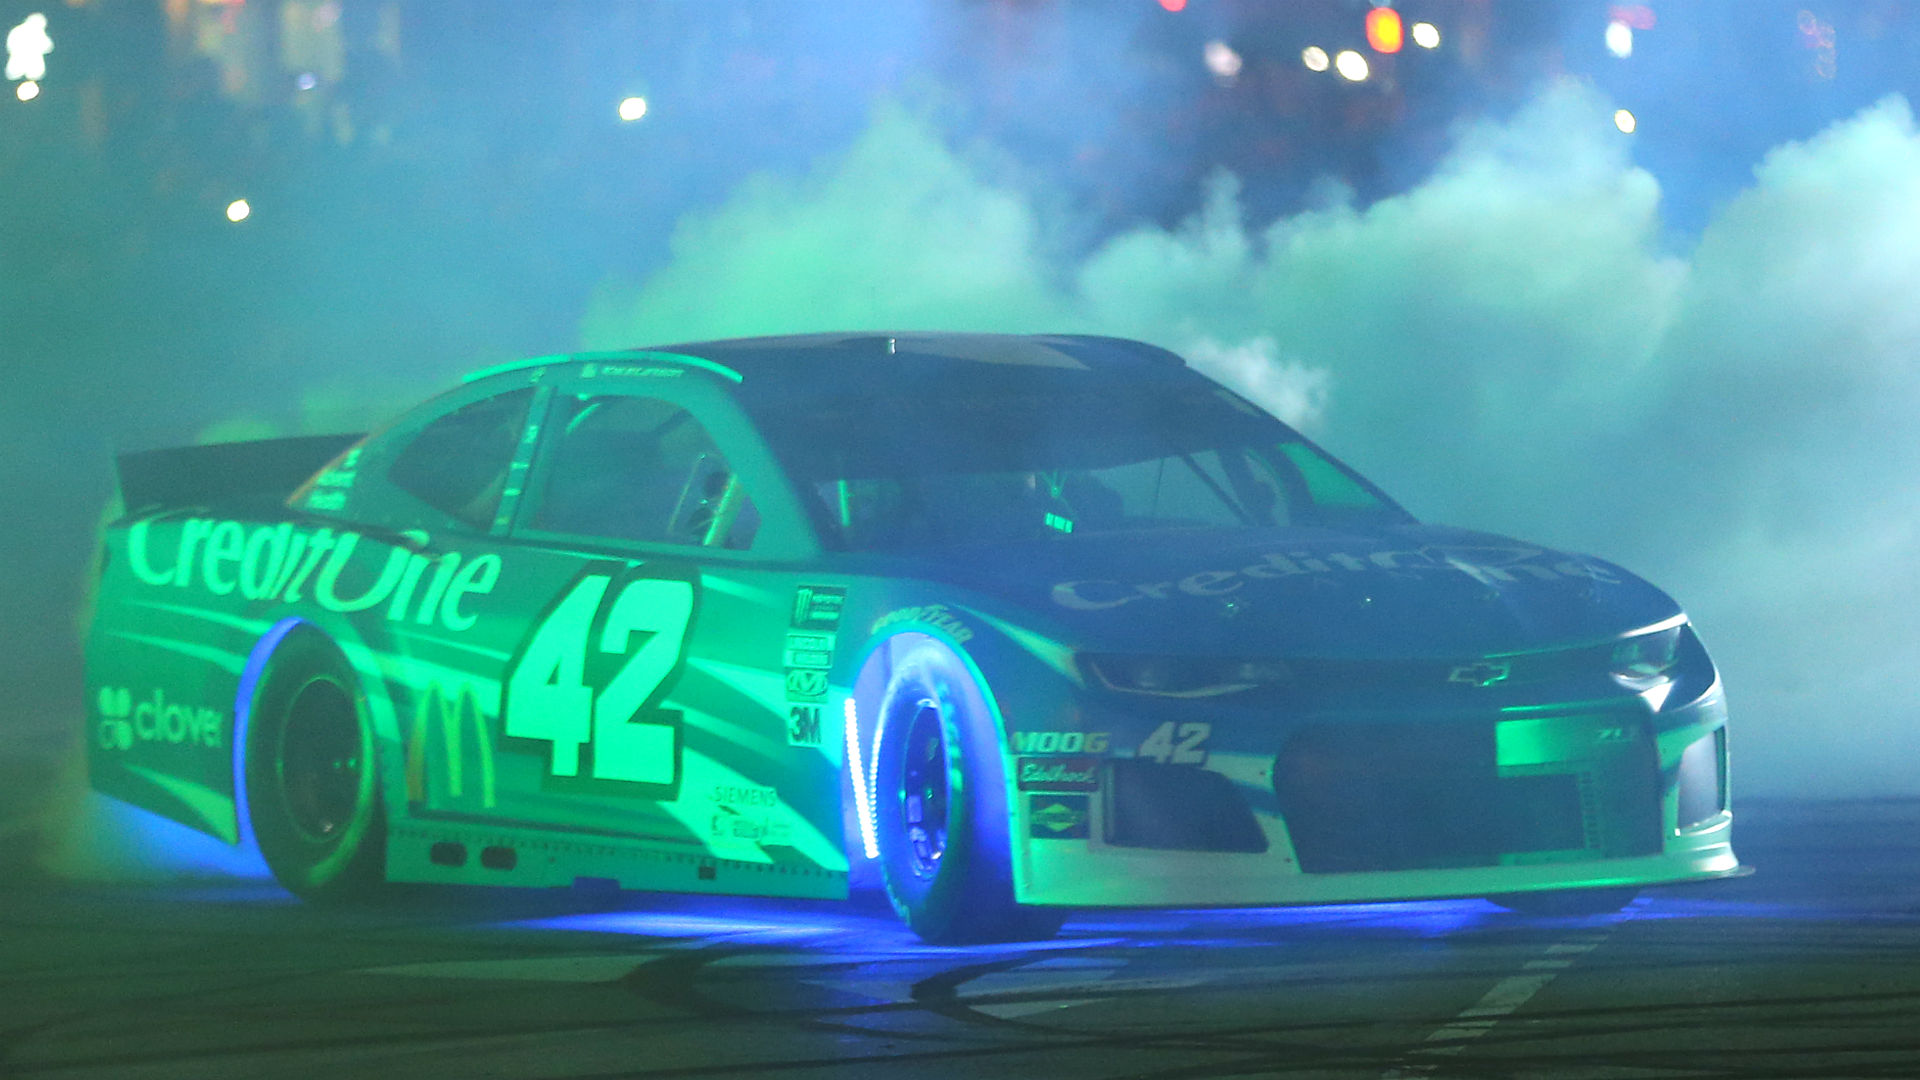 NASCAR will use underglow lights on cars for the All-Star Race at Bristol 1